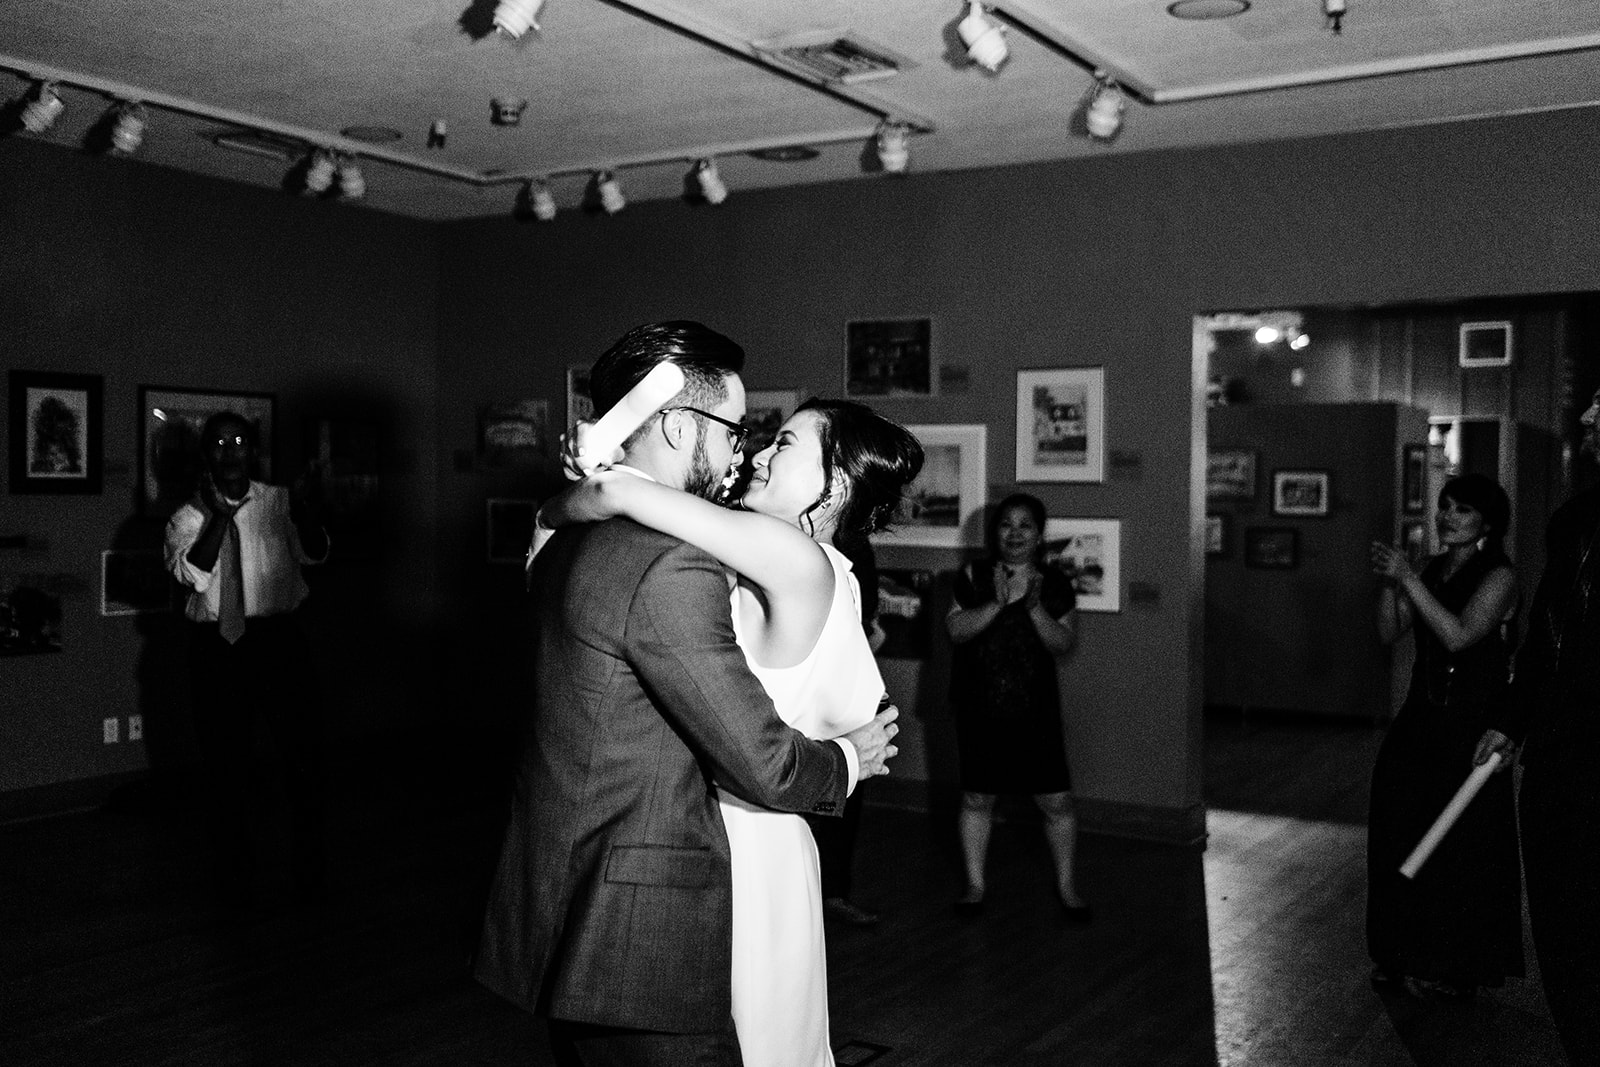 Los-Altos-History-Museum-Wedding_Orange-County-Wedding-Photographer_Clarisse-Rae-Photo-Video_98